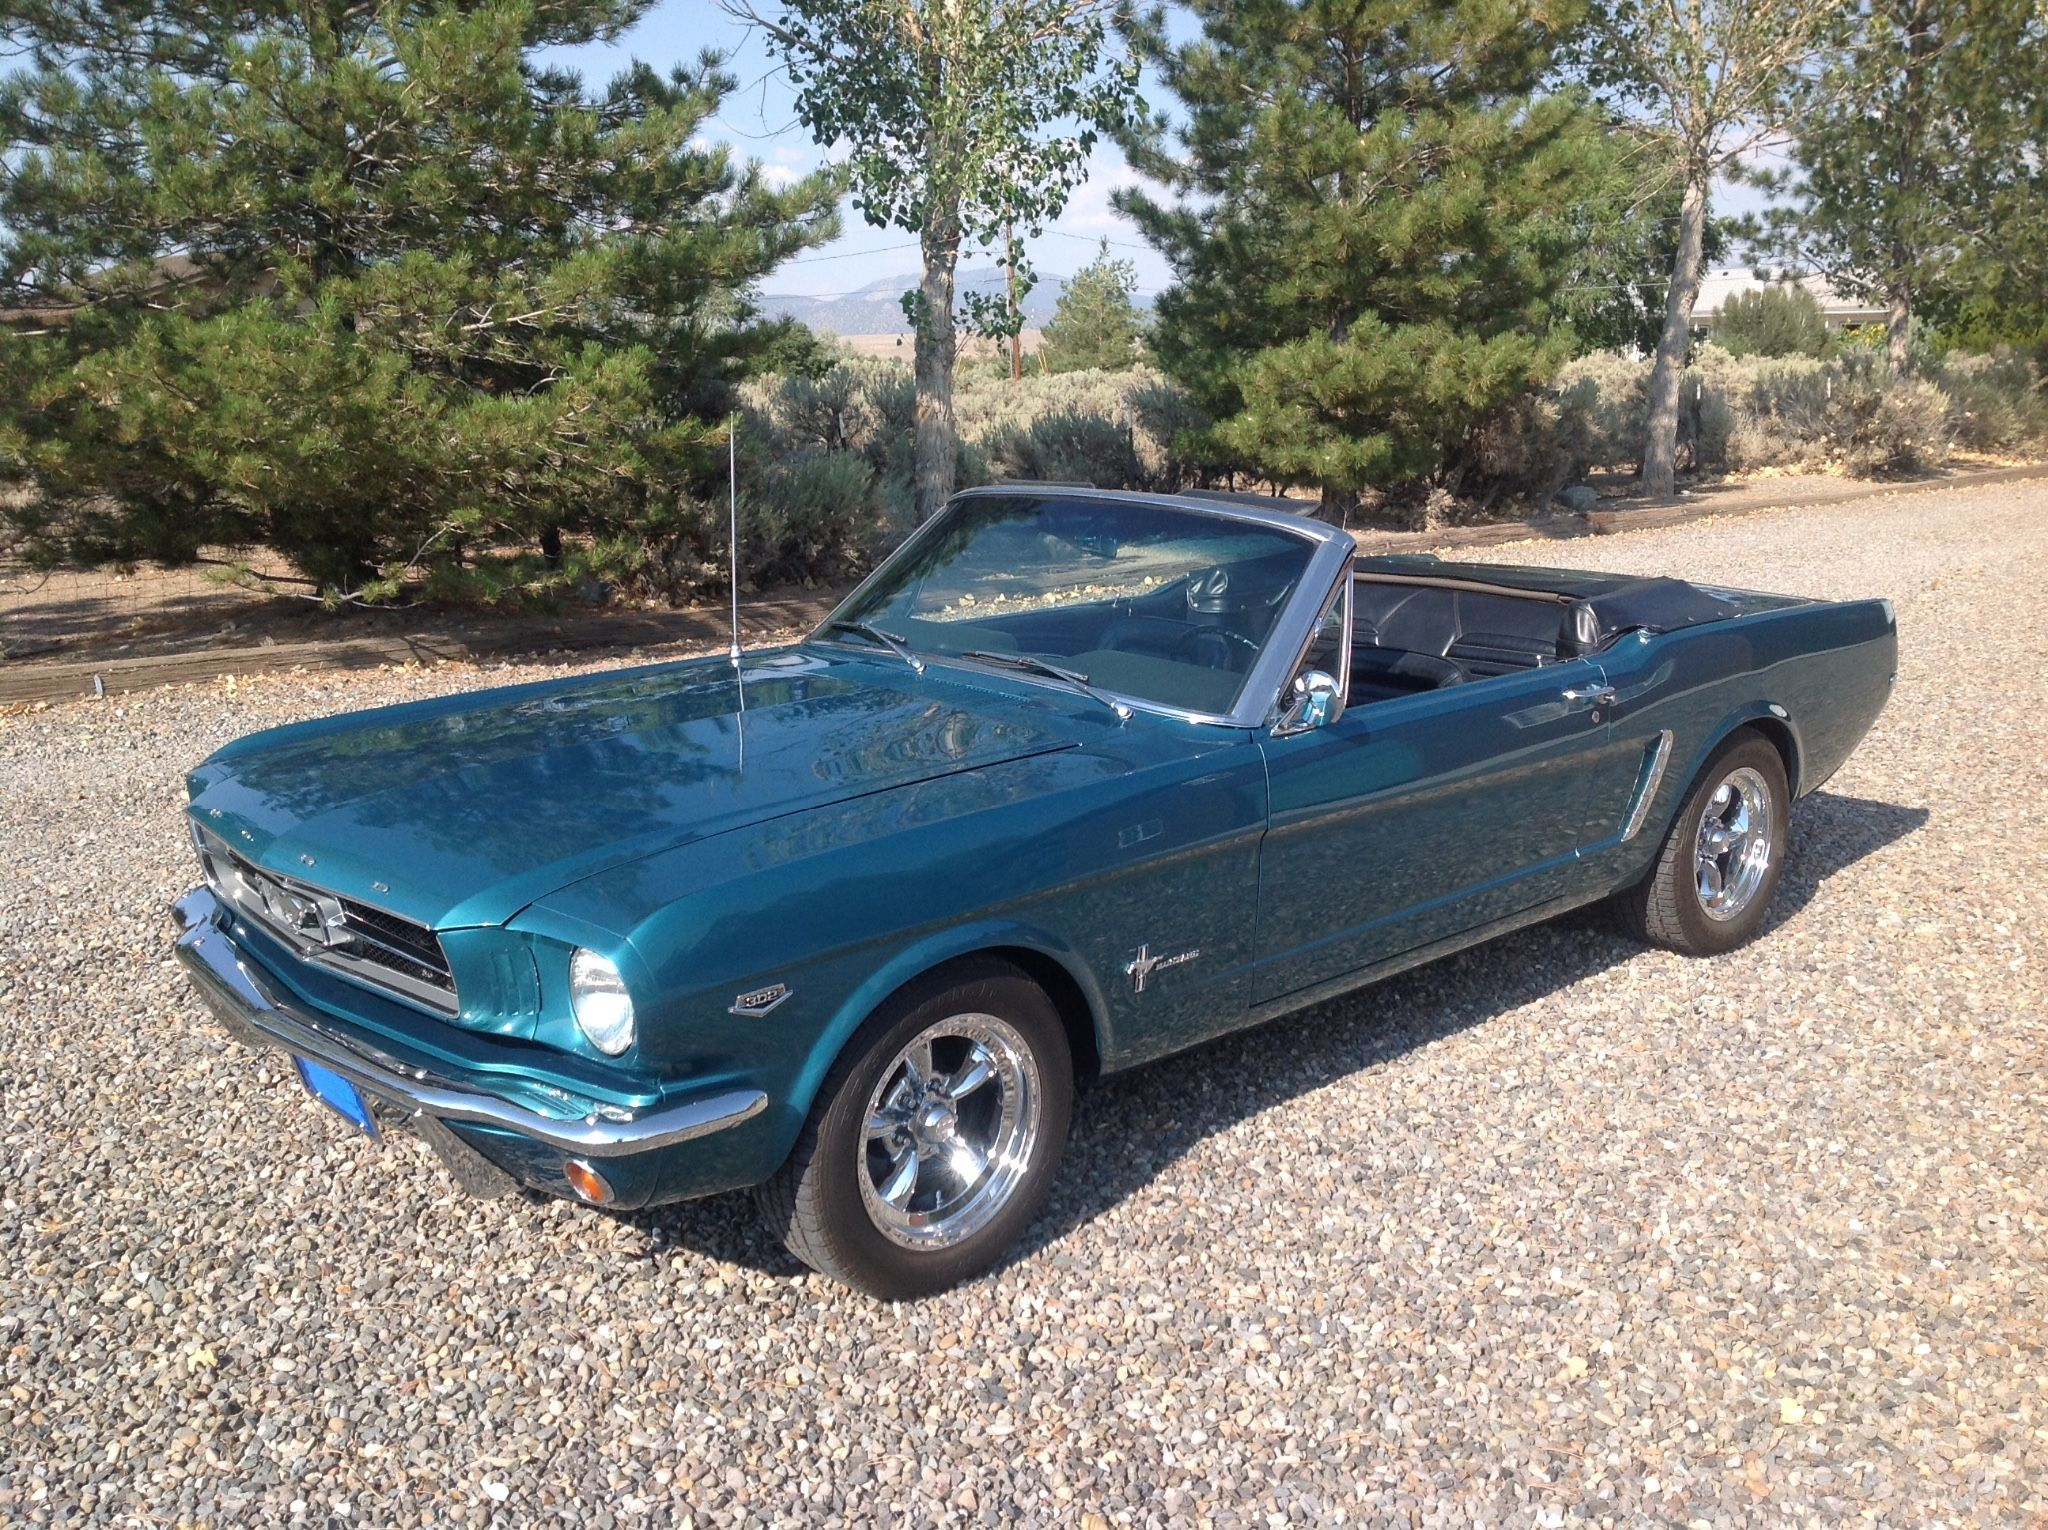 1965 Ford Mustang V8 Convertible Classicconvertible With Images